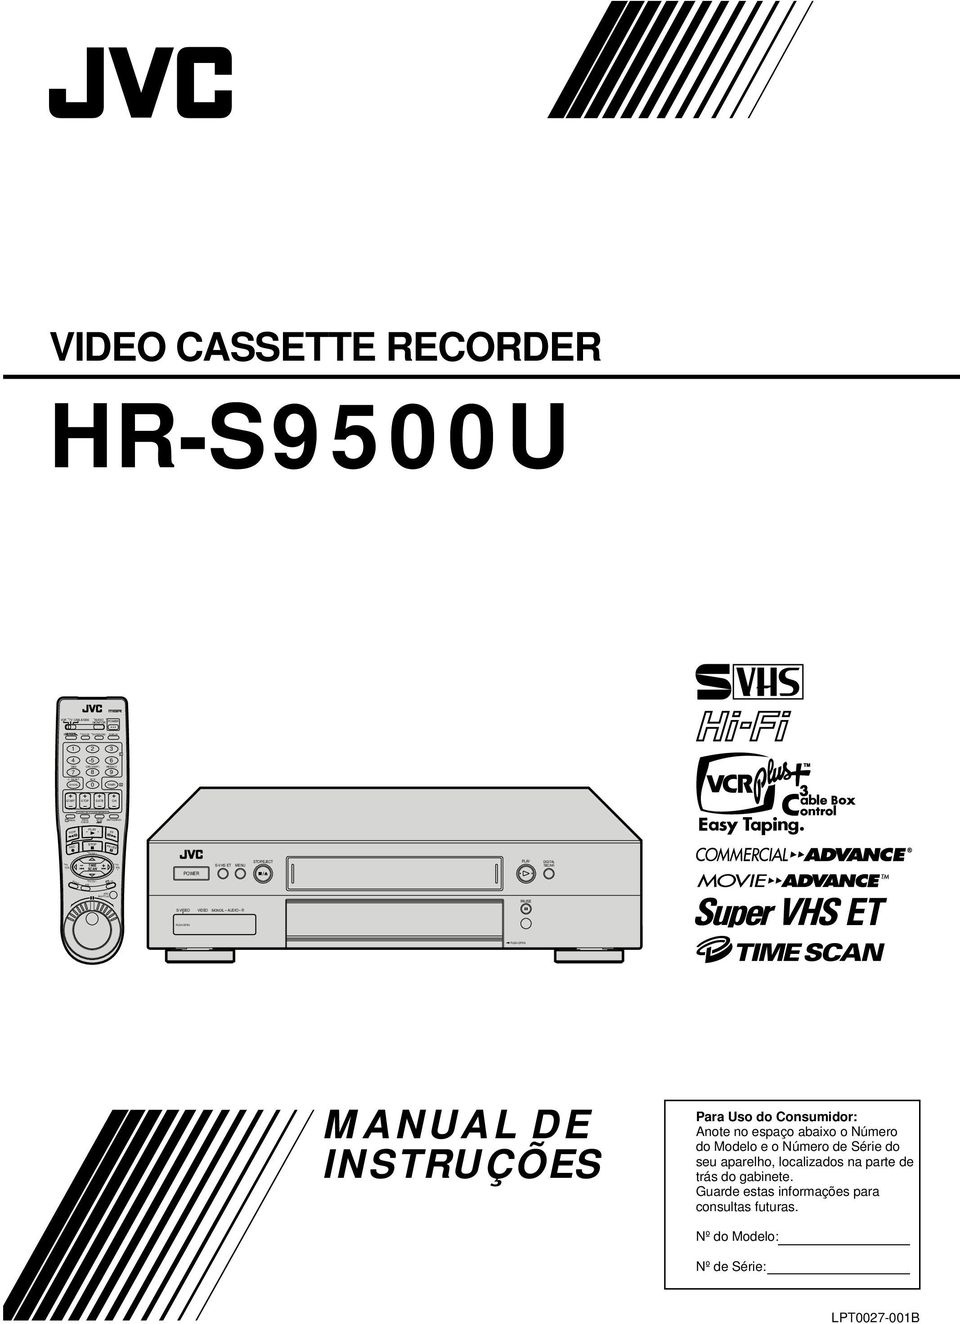 6 REW FF REC PAUSE TIME SCAN POWER S-VHS ET STOP/EJECT PLAY DIGITAL TBC/NR JOG/ SHUTTLE PAUSE S-VIDEO VIDEO (MONO)L AUDIO R MANUAL DE INSTRUÇÕES Para Uso do